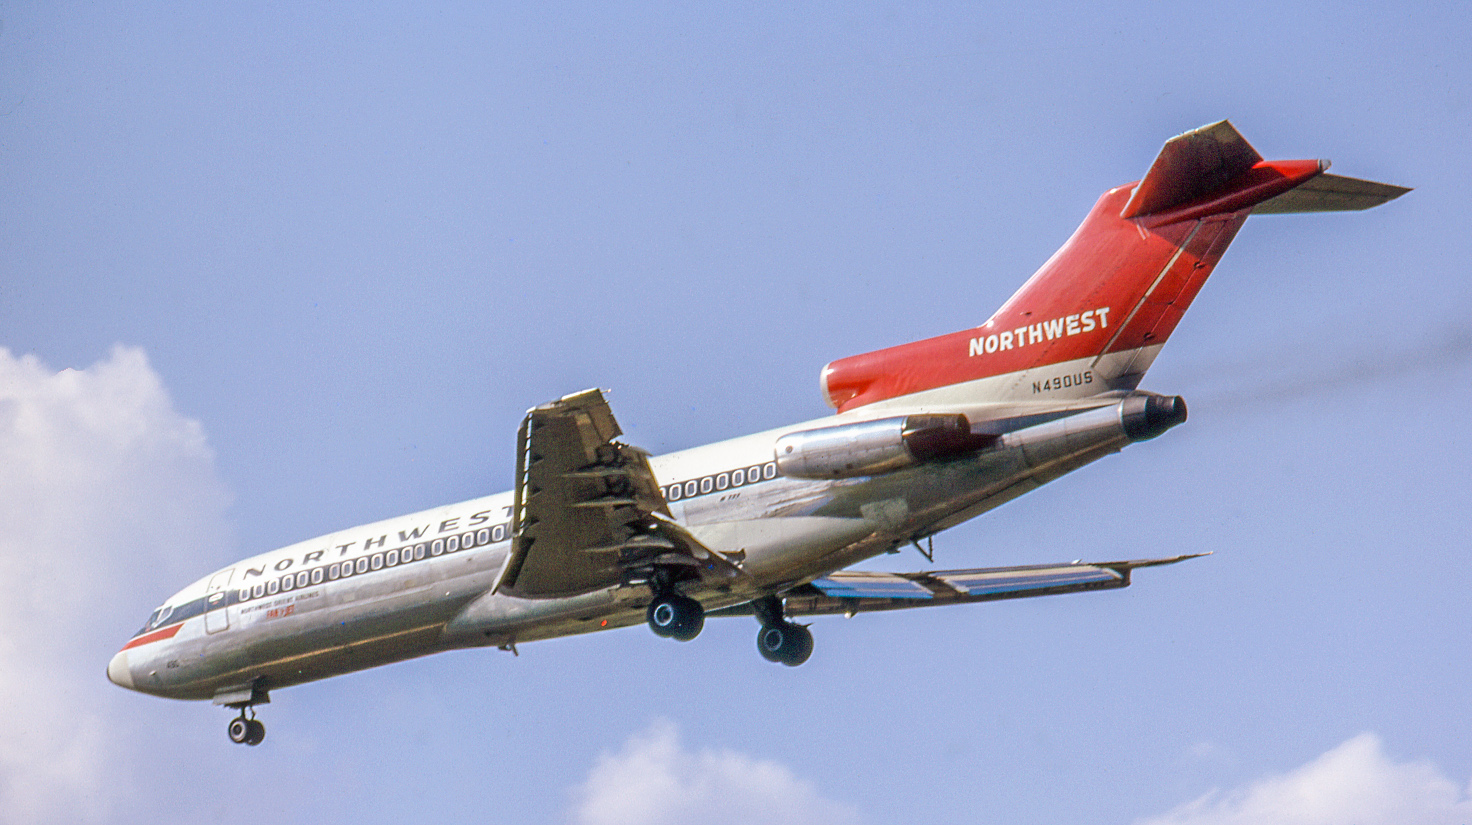 Another renowned 727 operator was Northwest Orient Airlines of Minneapolis. Here its recently-delivered 727-51C N490US lands at O'Hare on August 28, 1966. It served NWA into 1984, then flew cargo for Emery Worldwide Airlines 1984-92. N490US ended its days with UPS, from where it retired to storage in New Mexico in 2003.